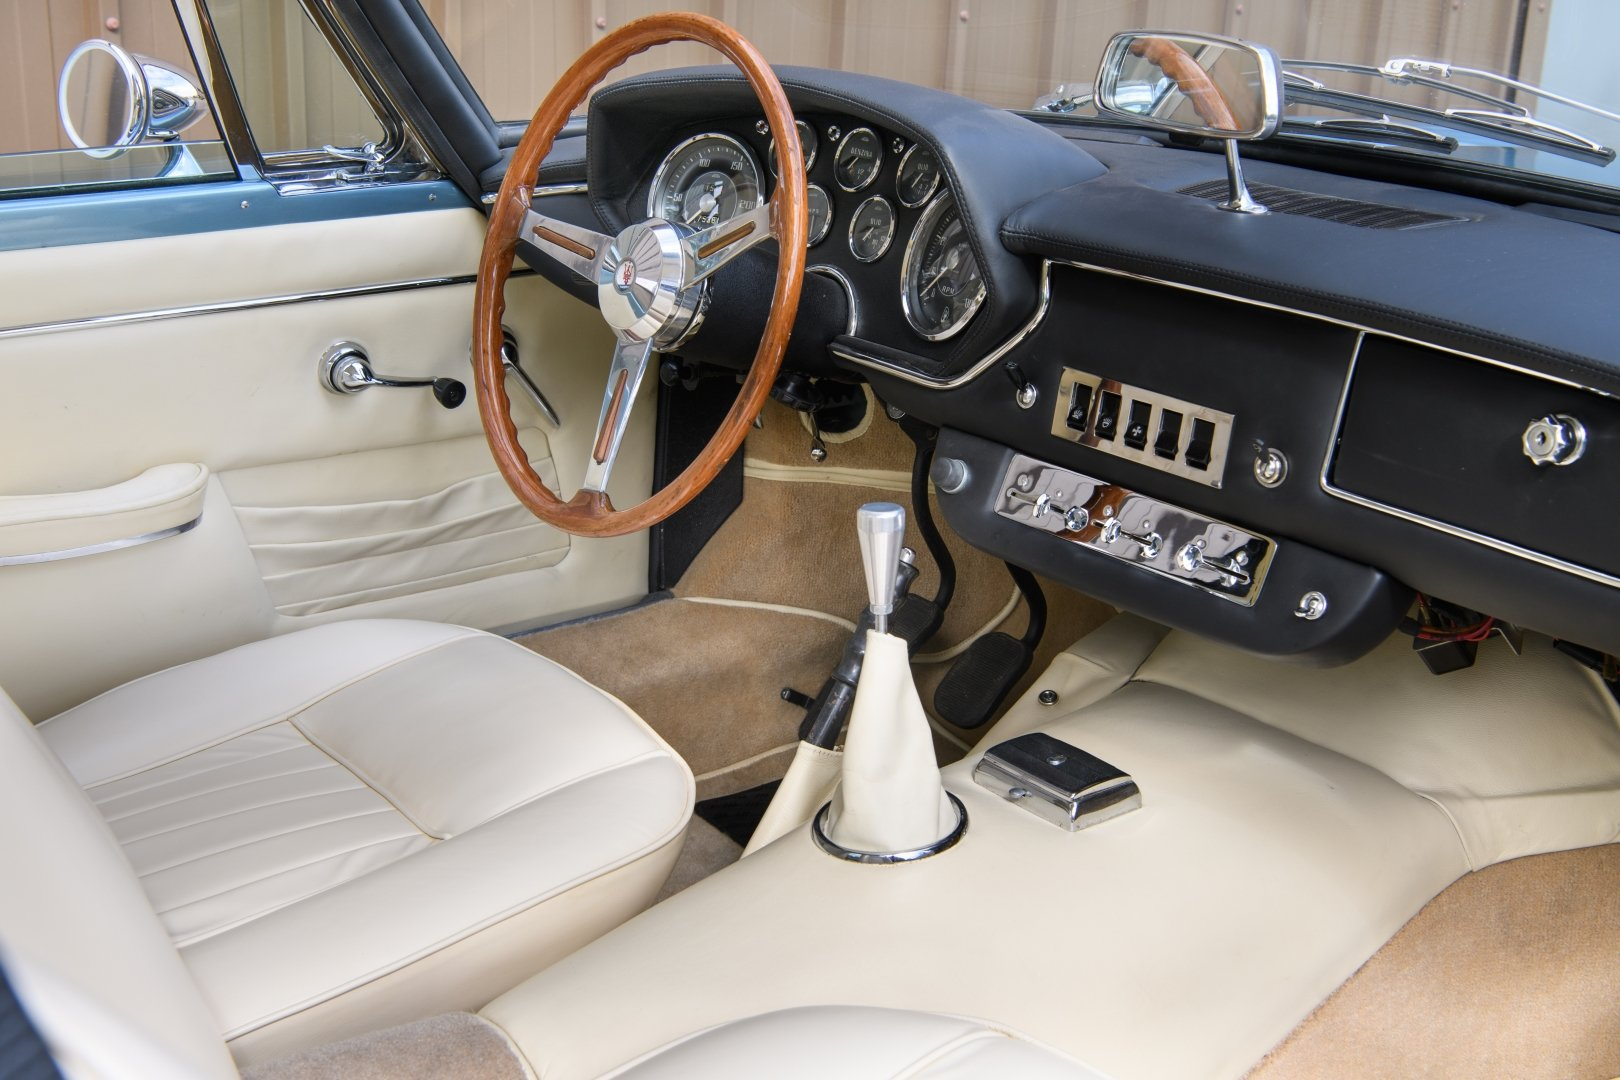 1965 Maserati Mistral 3700 Coupe  For Sale (picture 3 of 6)